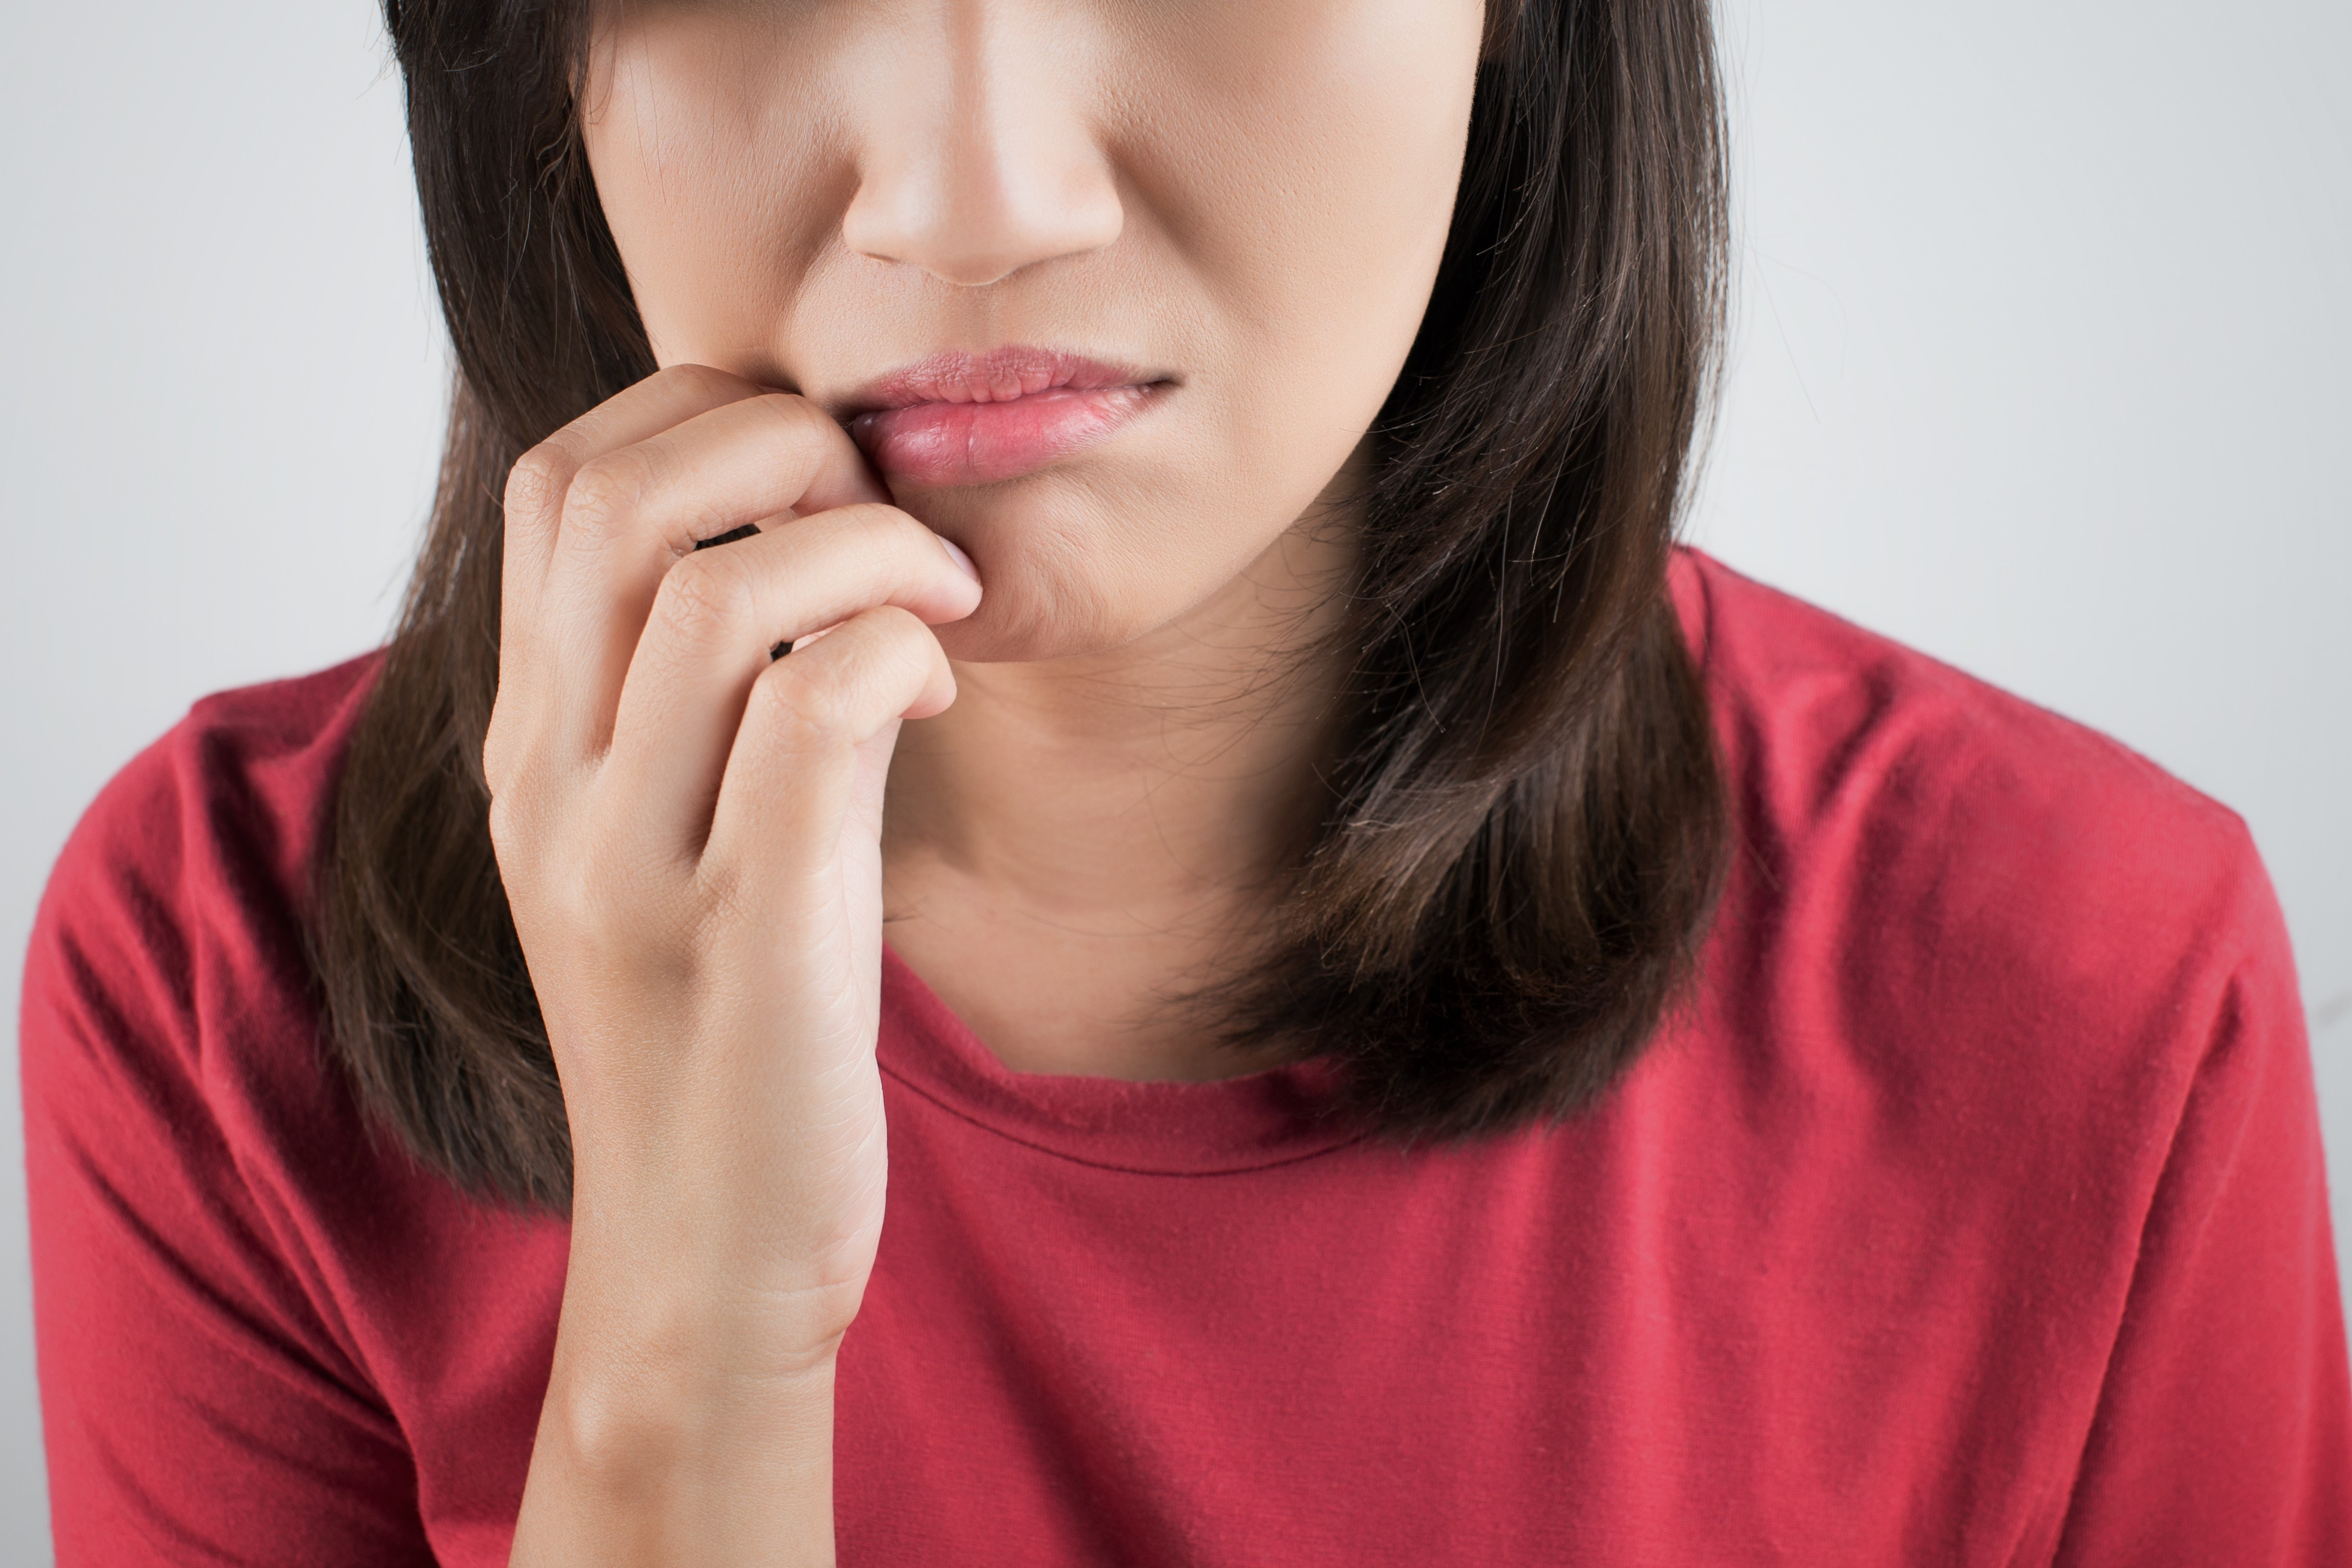 An image depicting a person suffering from itchy mouth symptoms